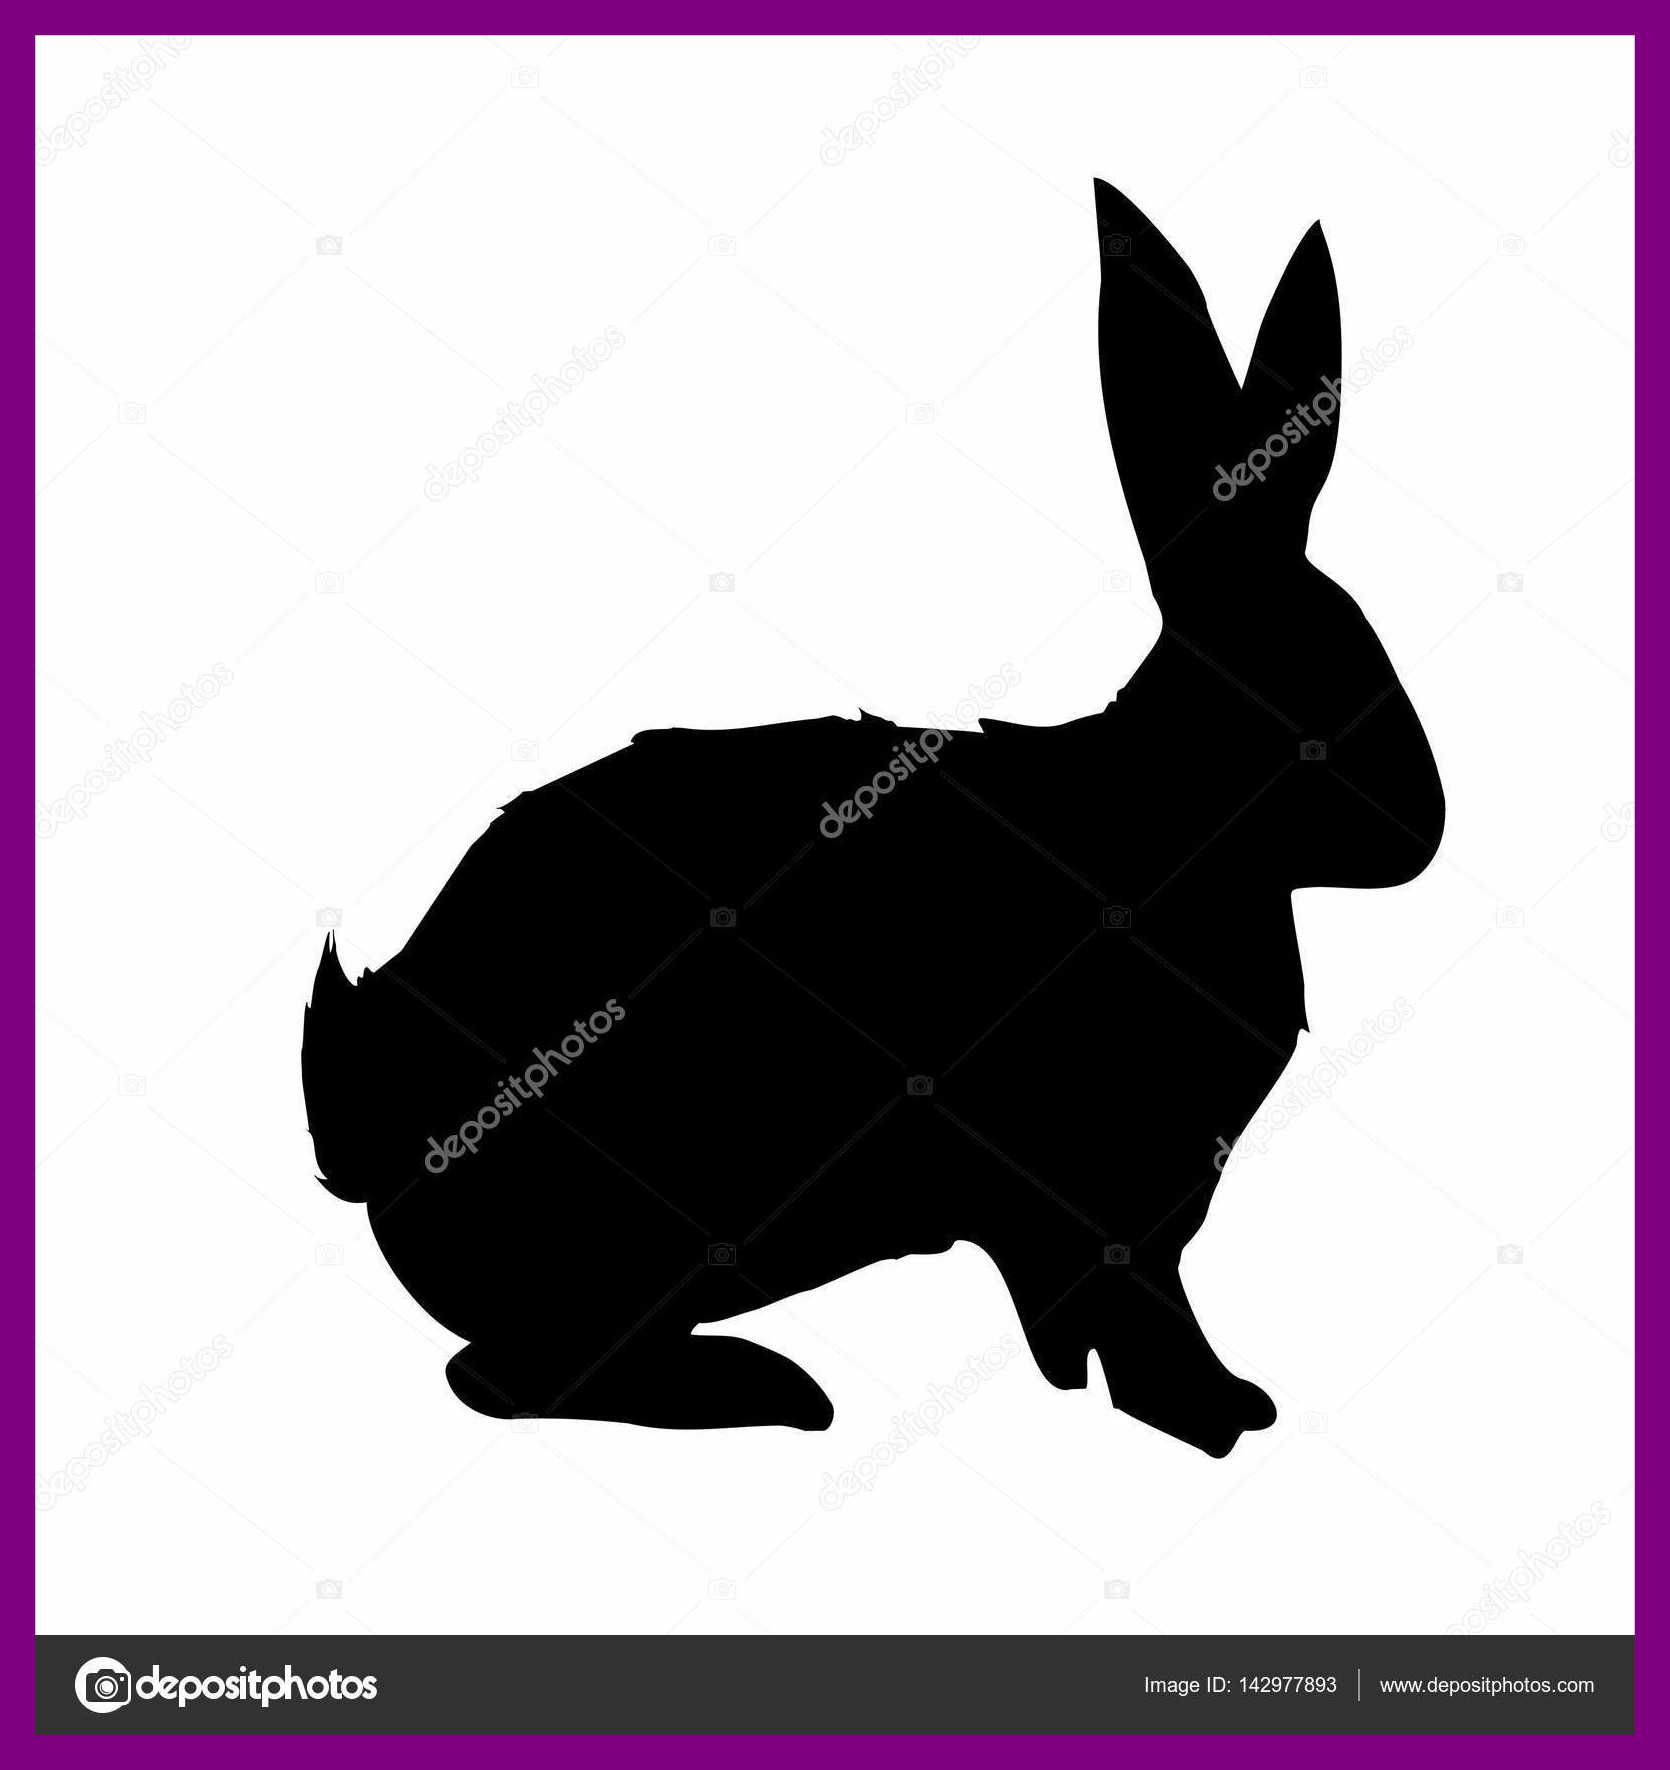 1670x1770 Awesome Bunny Silhouette U Head Ear Easter Vector Image Of Rabbit